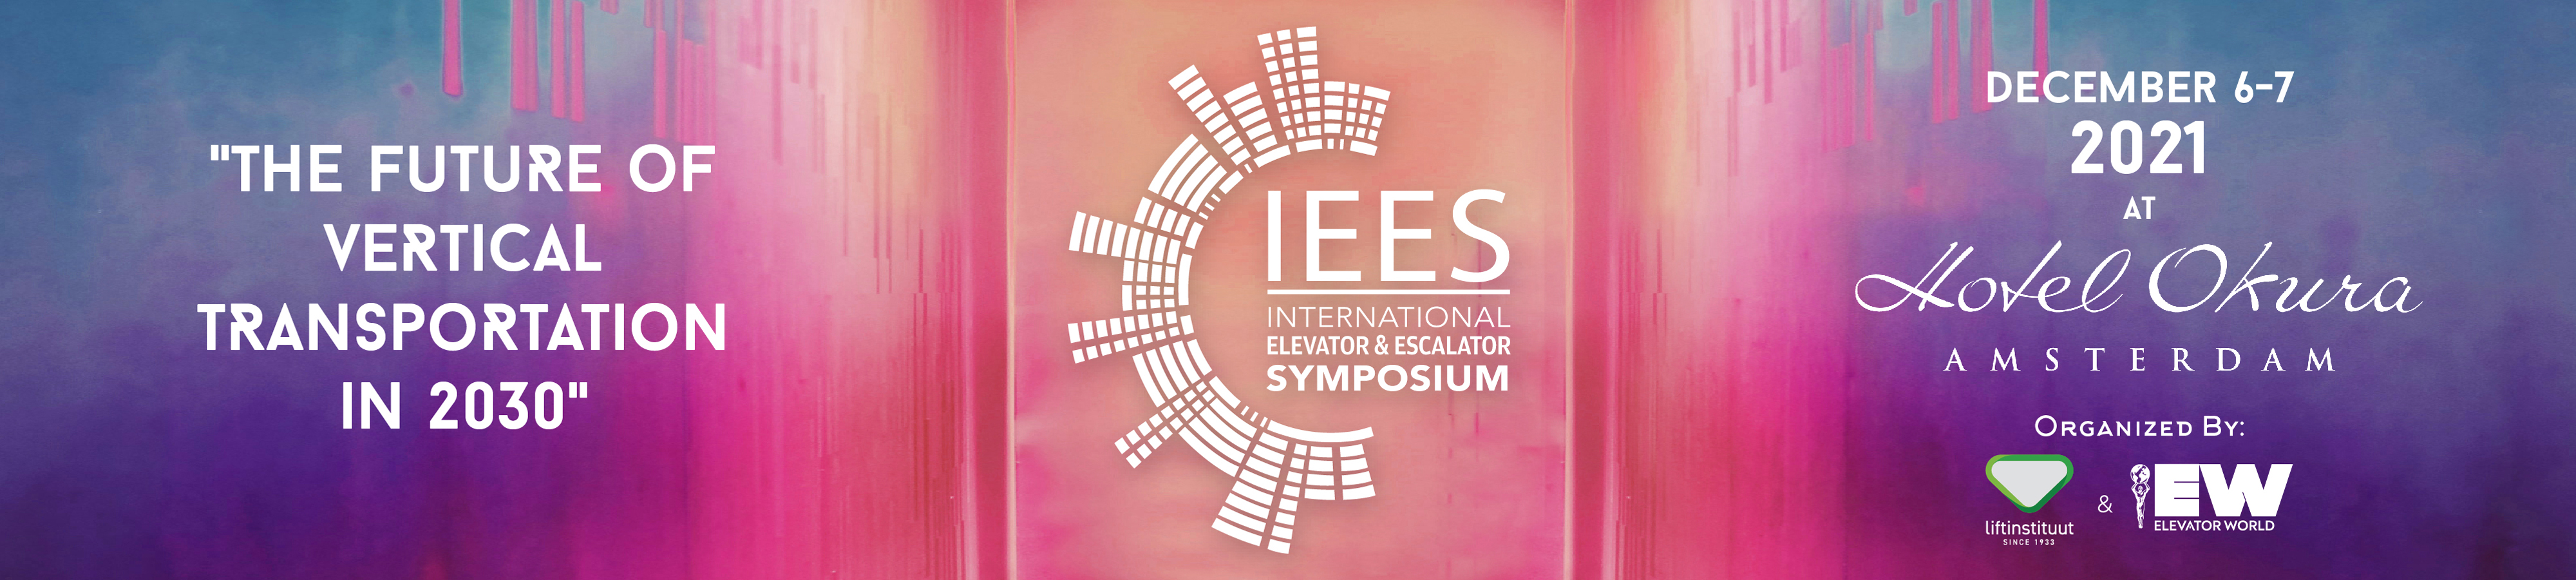 IEES International Elevator & Escalator Symposium 2021